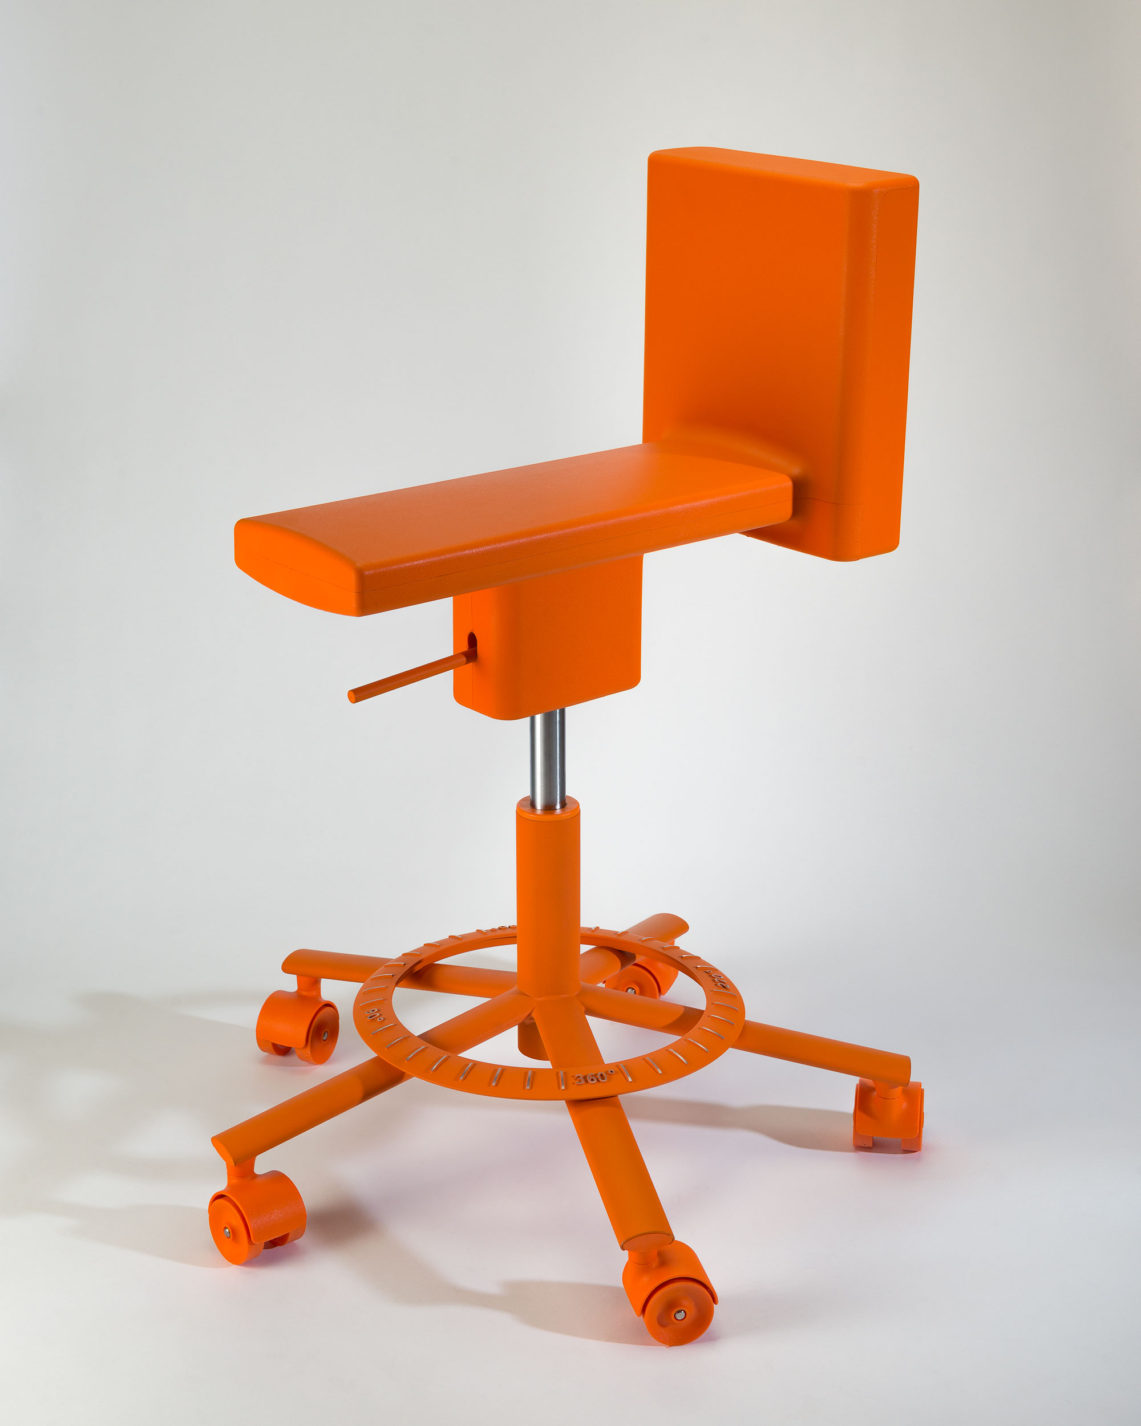 Tall swivel chair on casters with a very narrow seat and a low back. Every element is in bold orange.